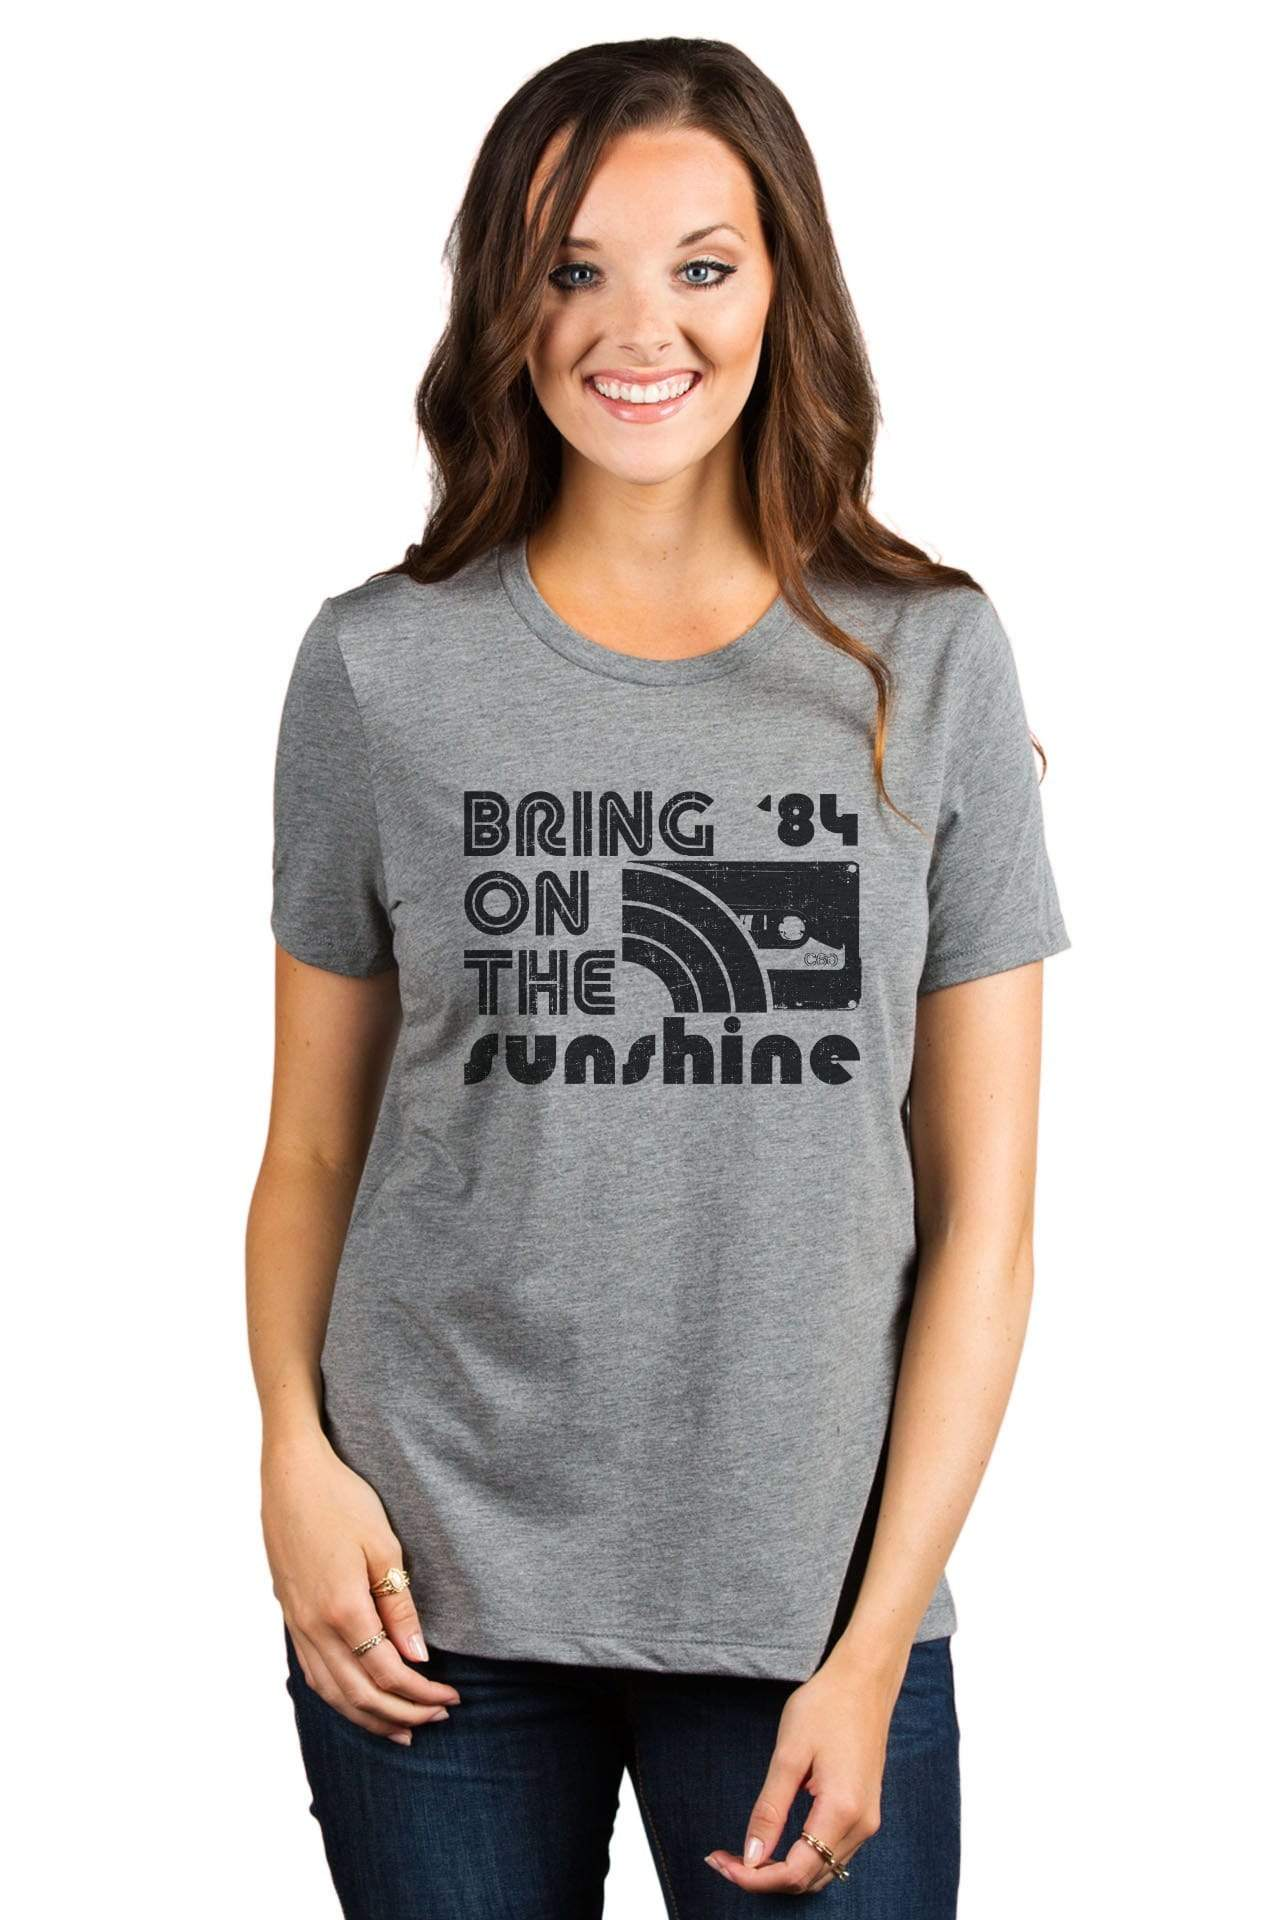 Bring On The Sunshine - Thread Tank | Stories You Can Wear | T-Shirts, Tank Tops and Sweatshirts